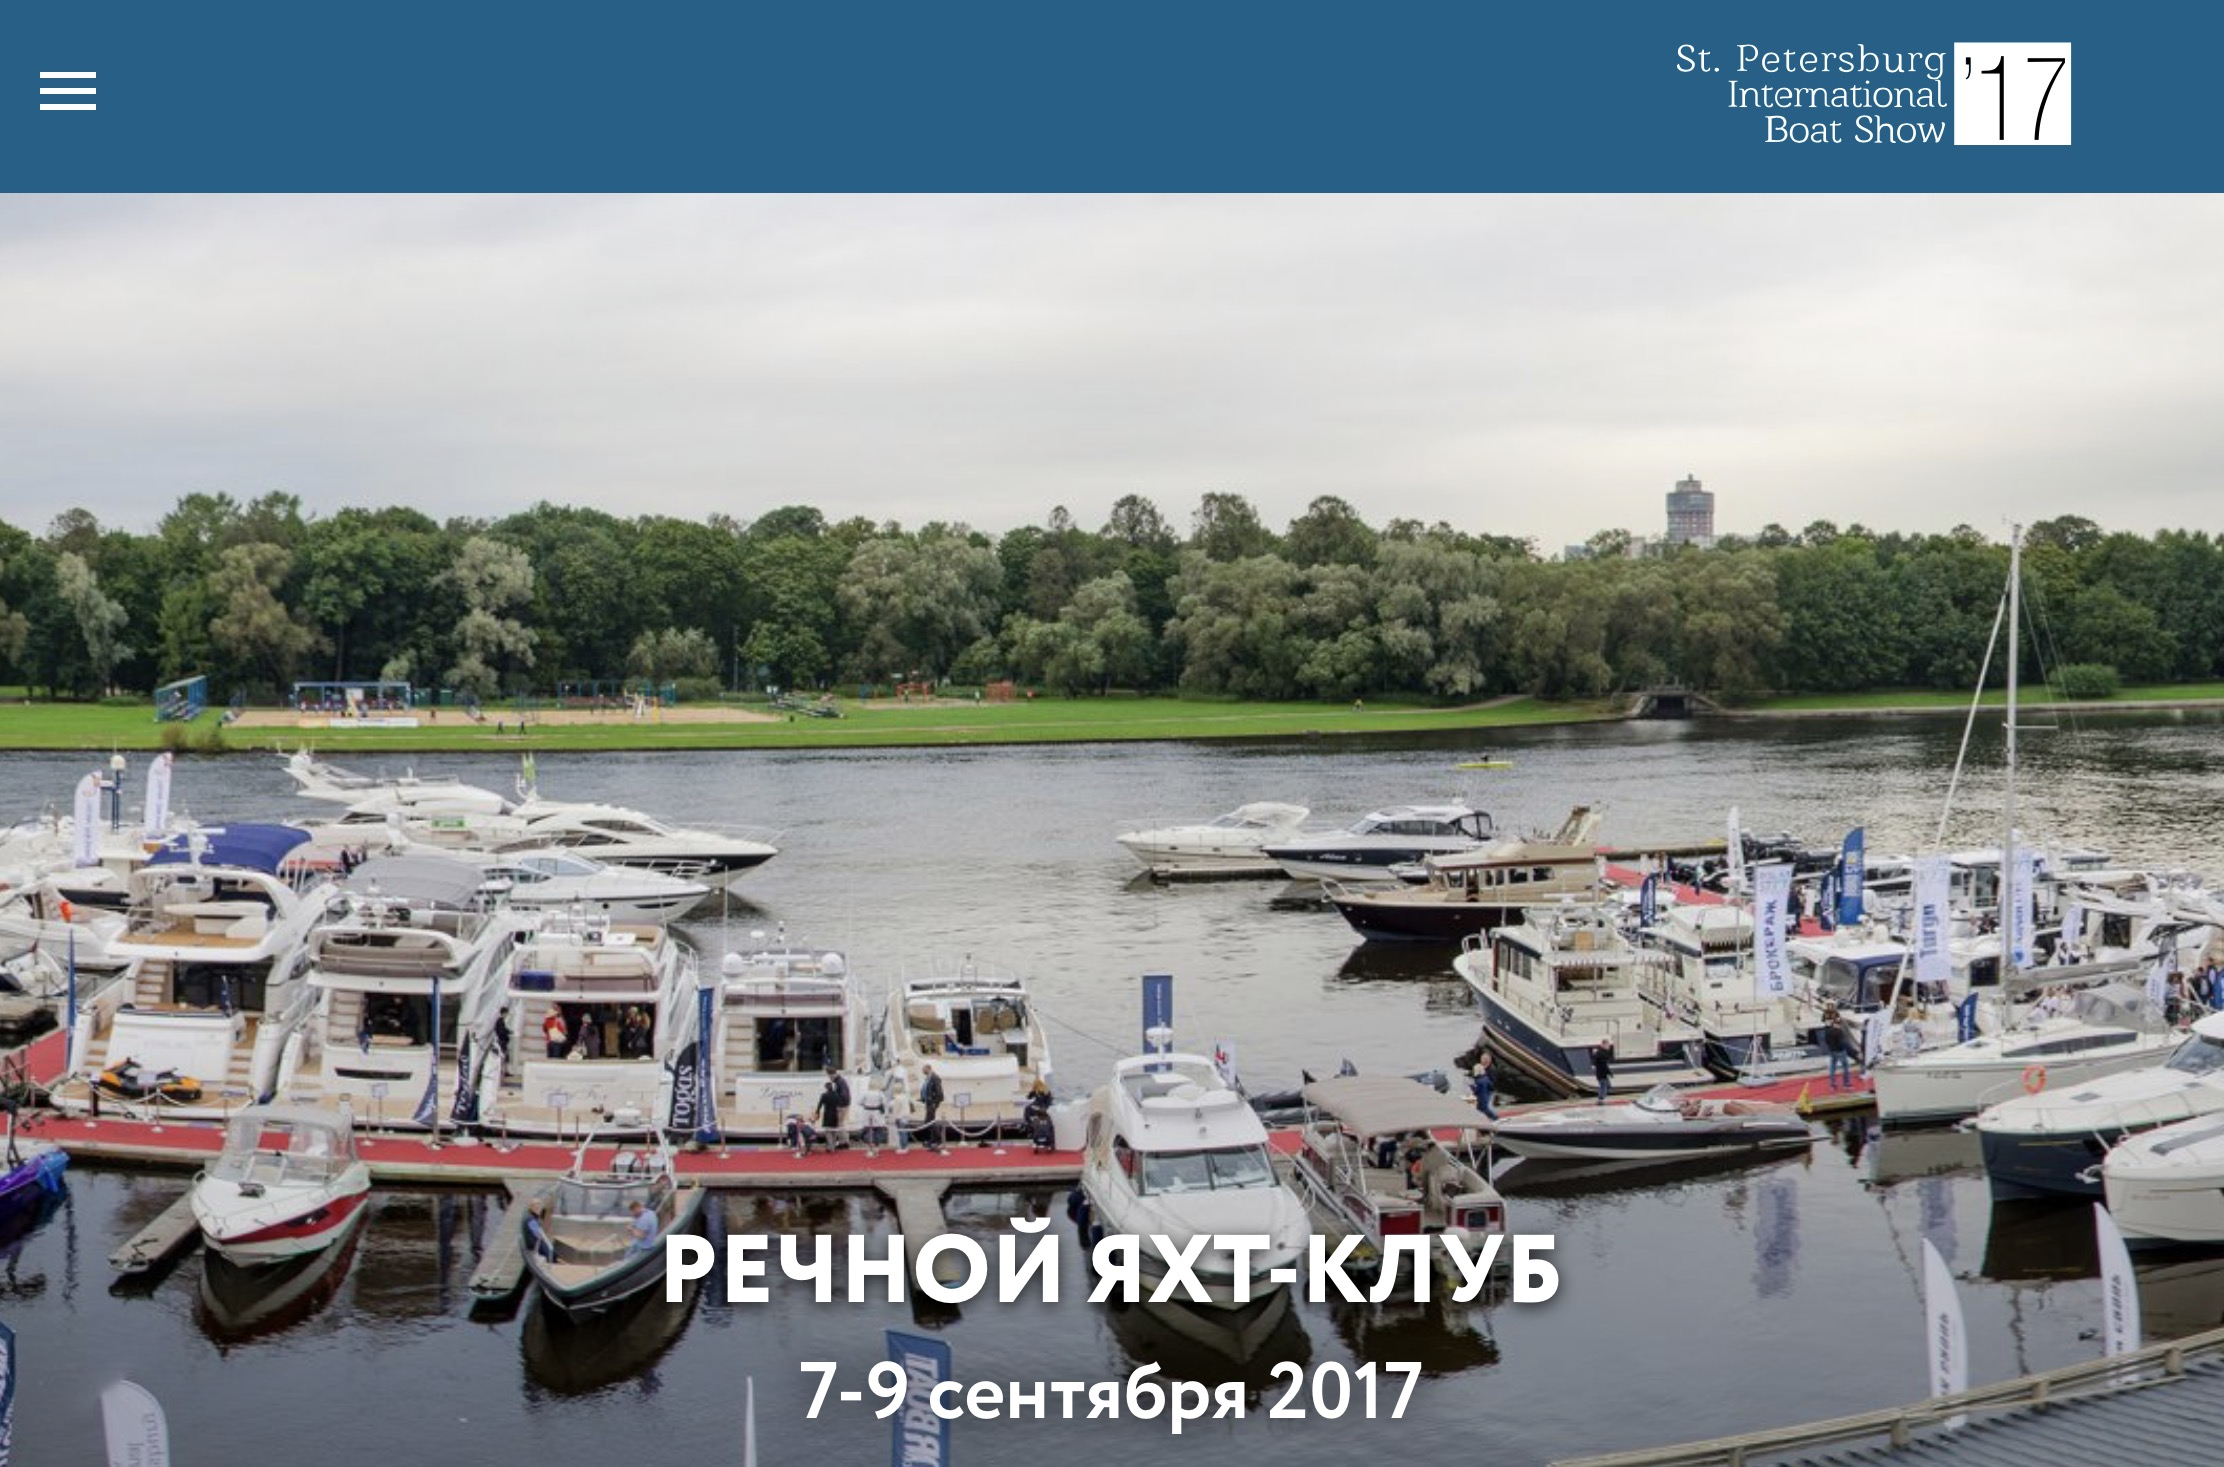 Мы учавствуем в St. Petersburg International Boat Show 2017